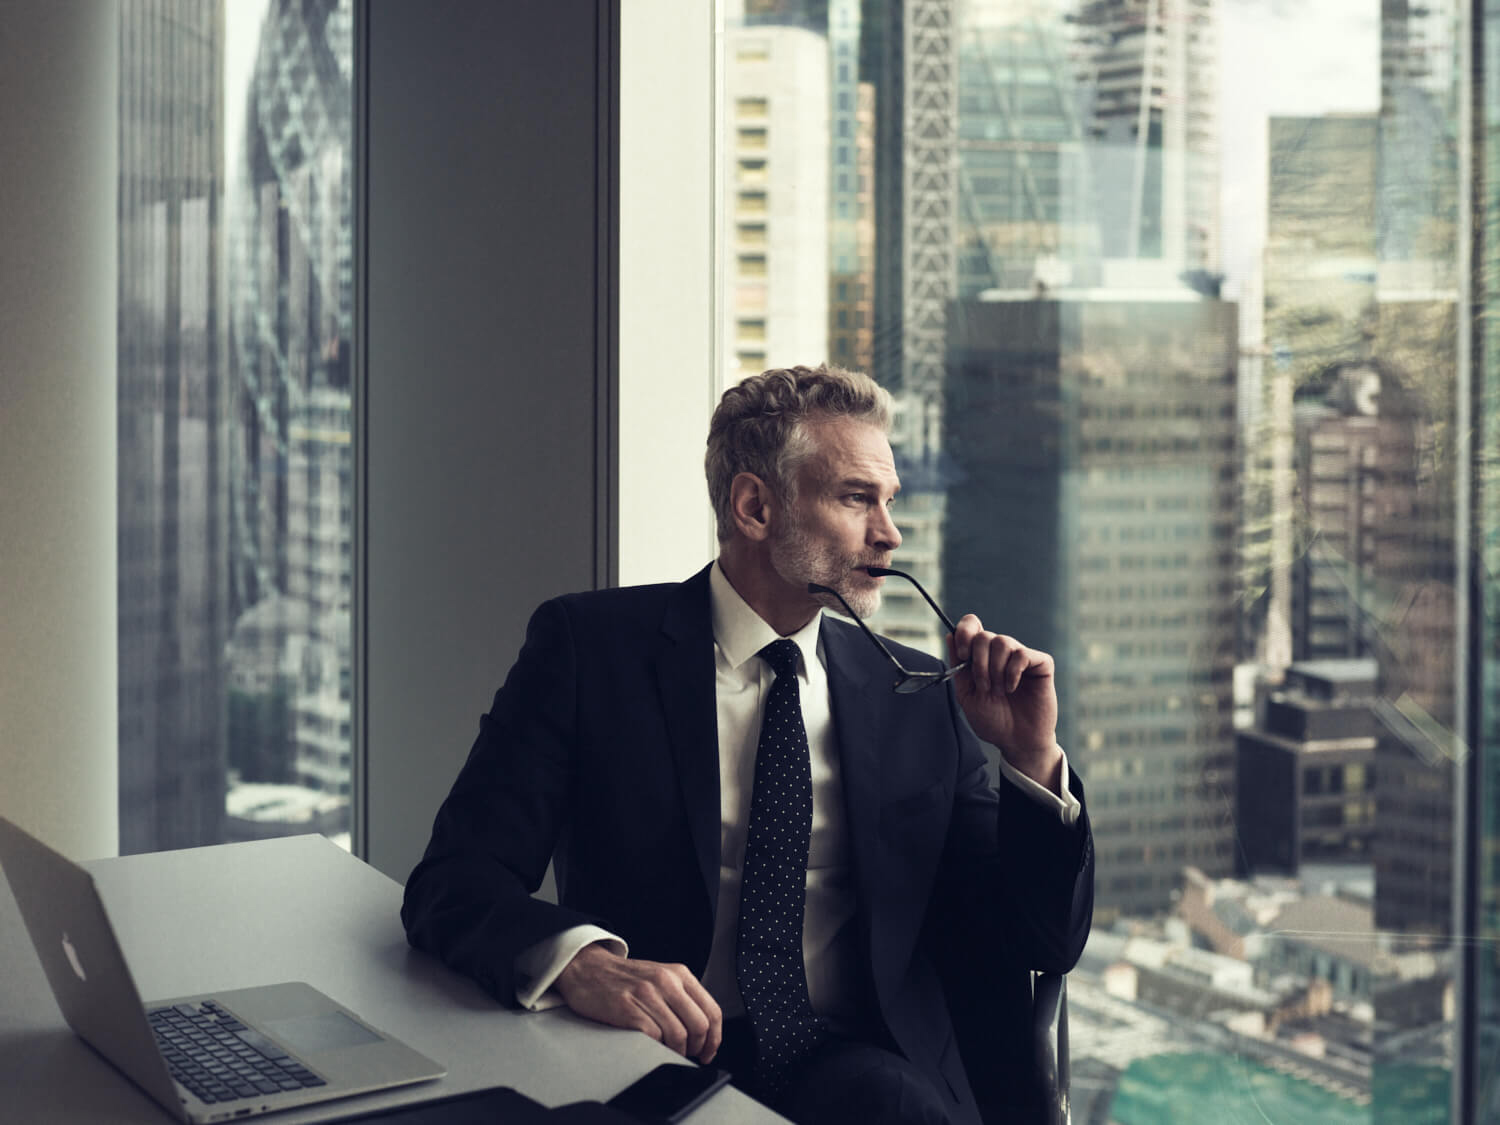 Businessman at desk, by lifestyle photographer Tim Cole